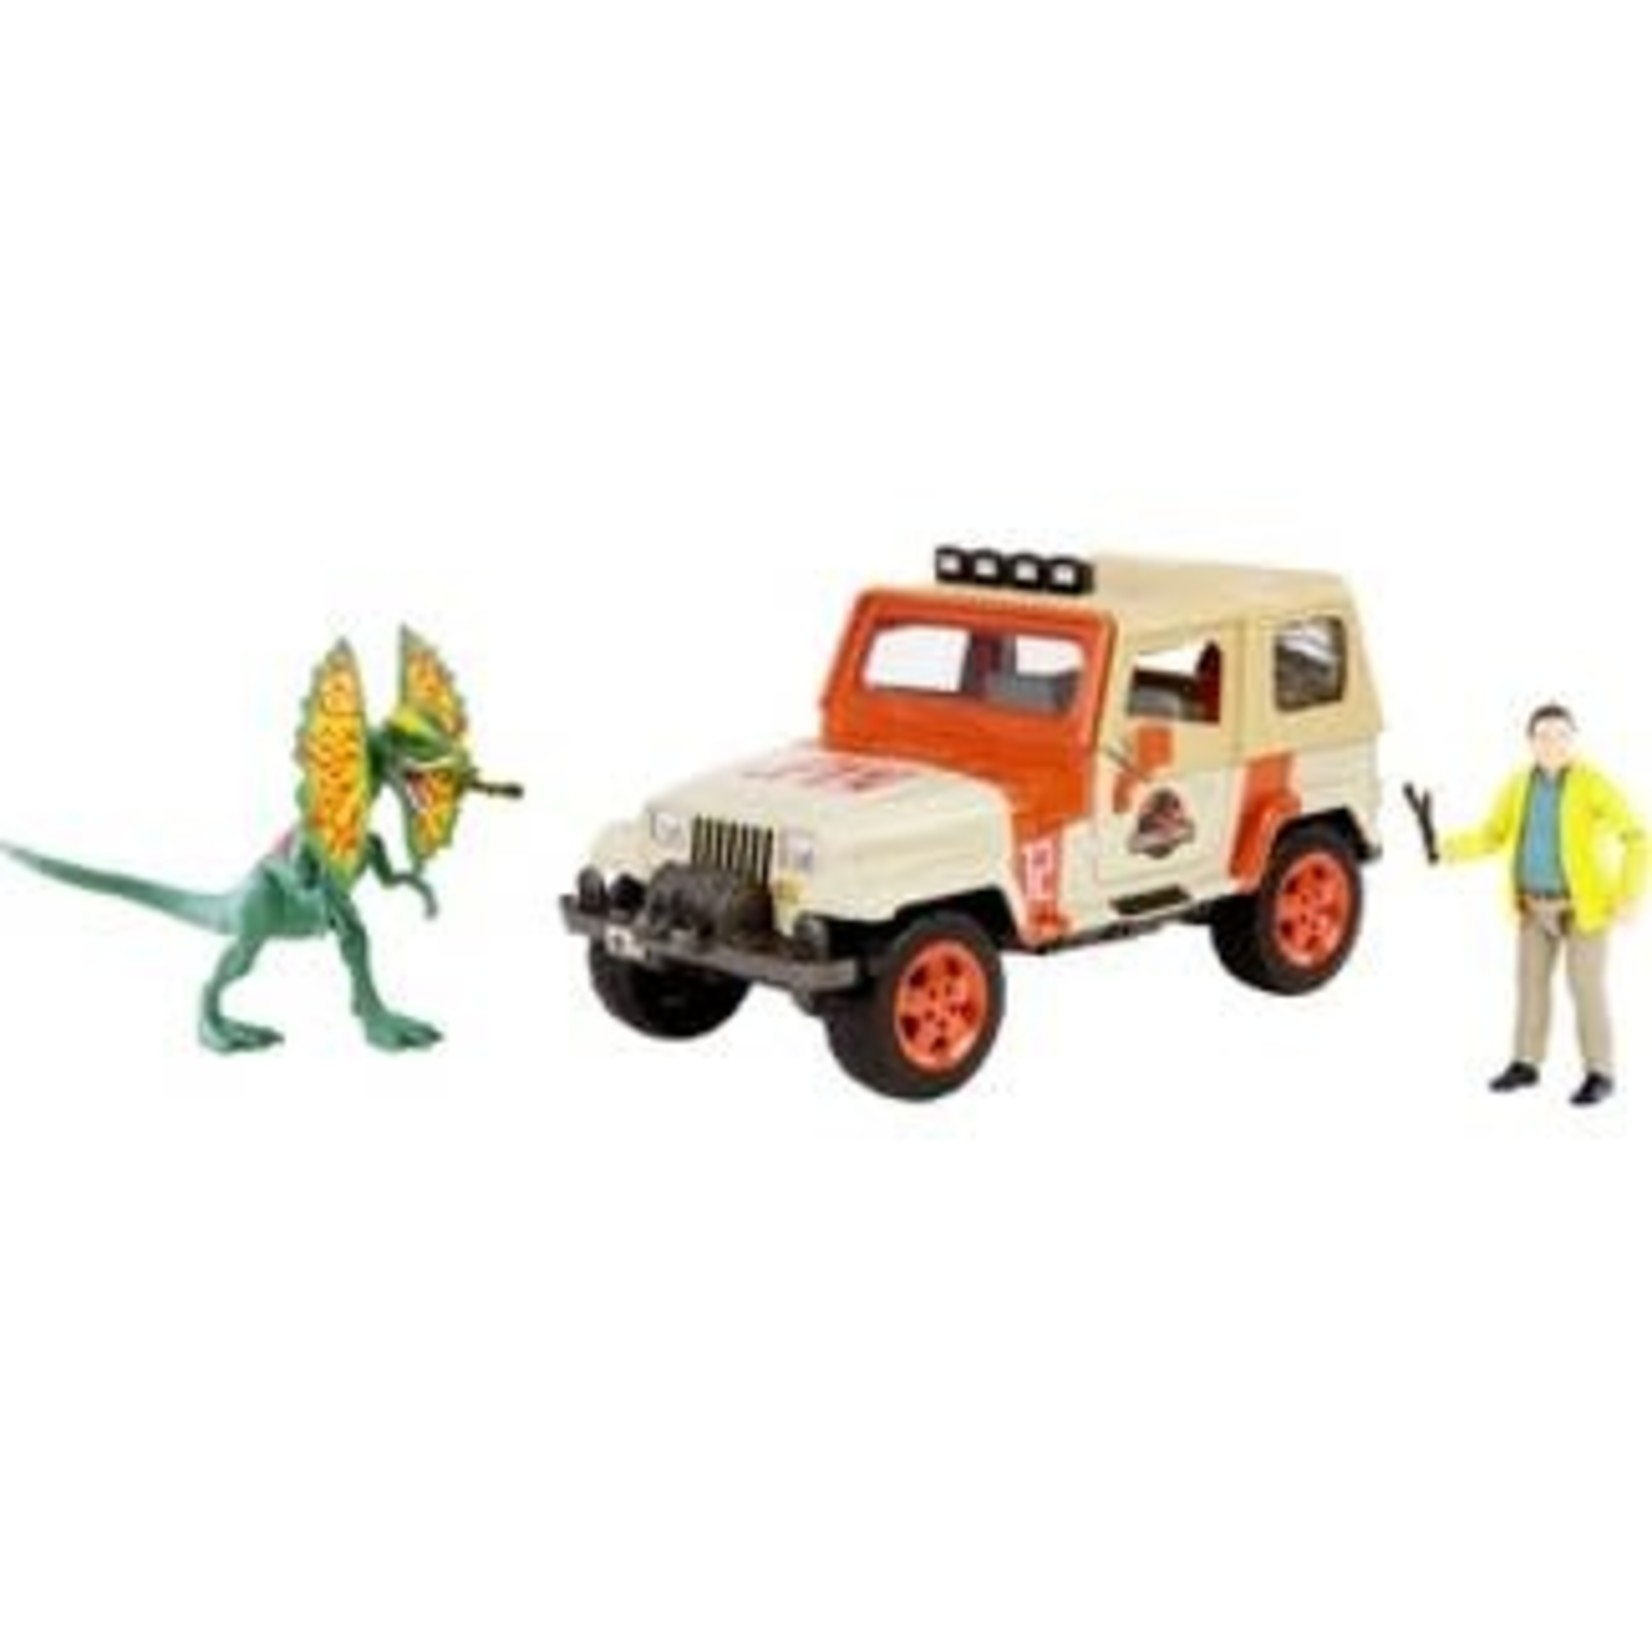 Jurassic World Legacy Collection - Dennis Nedry Getaway Pack